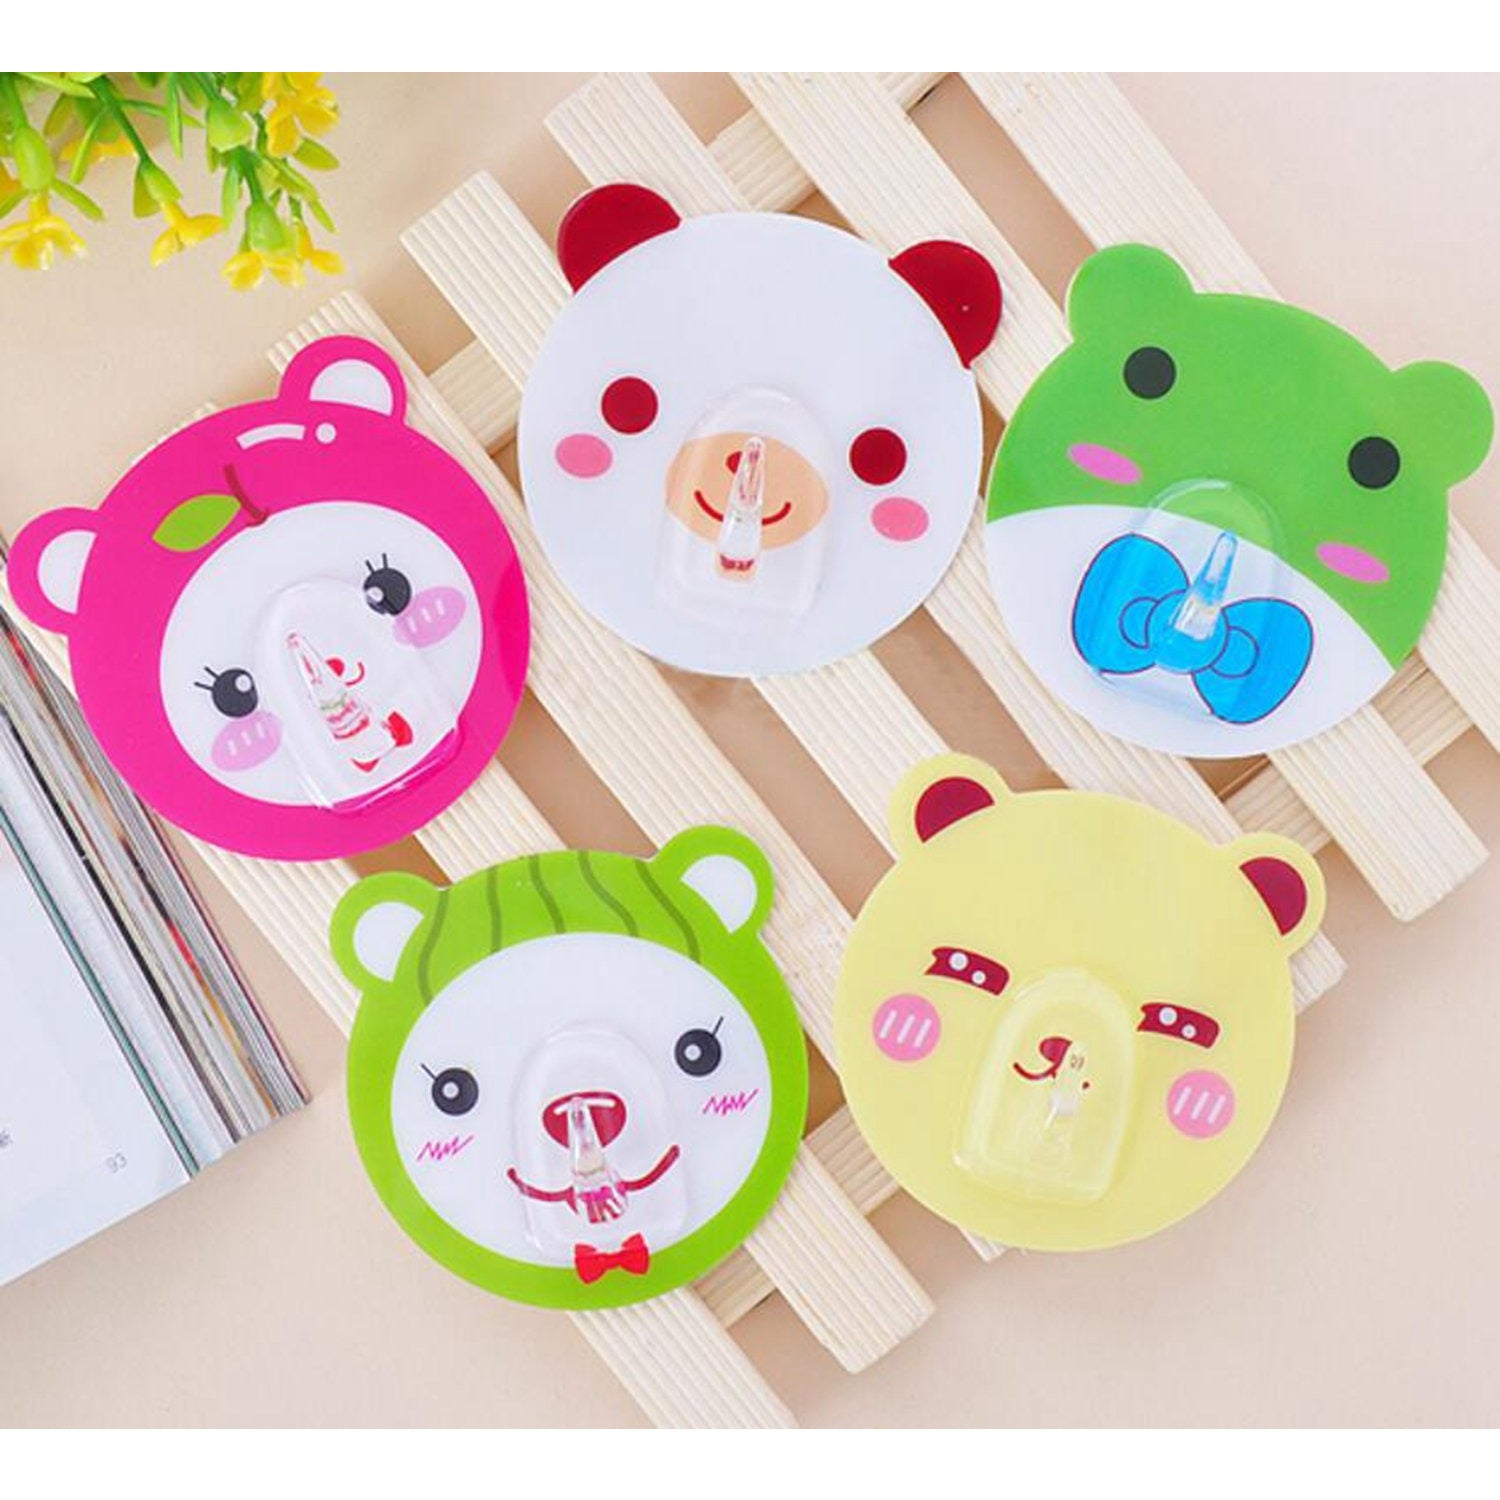 Cute Cartoon Animal Wall Hanger Hook Strong Adhesive Removable Kid Room - 5 Pack